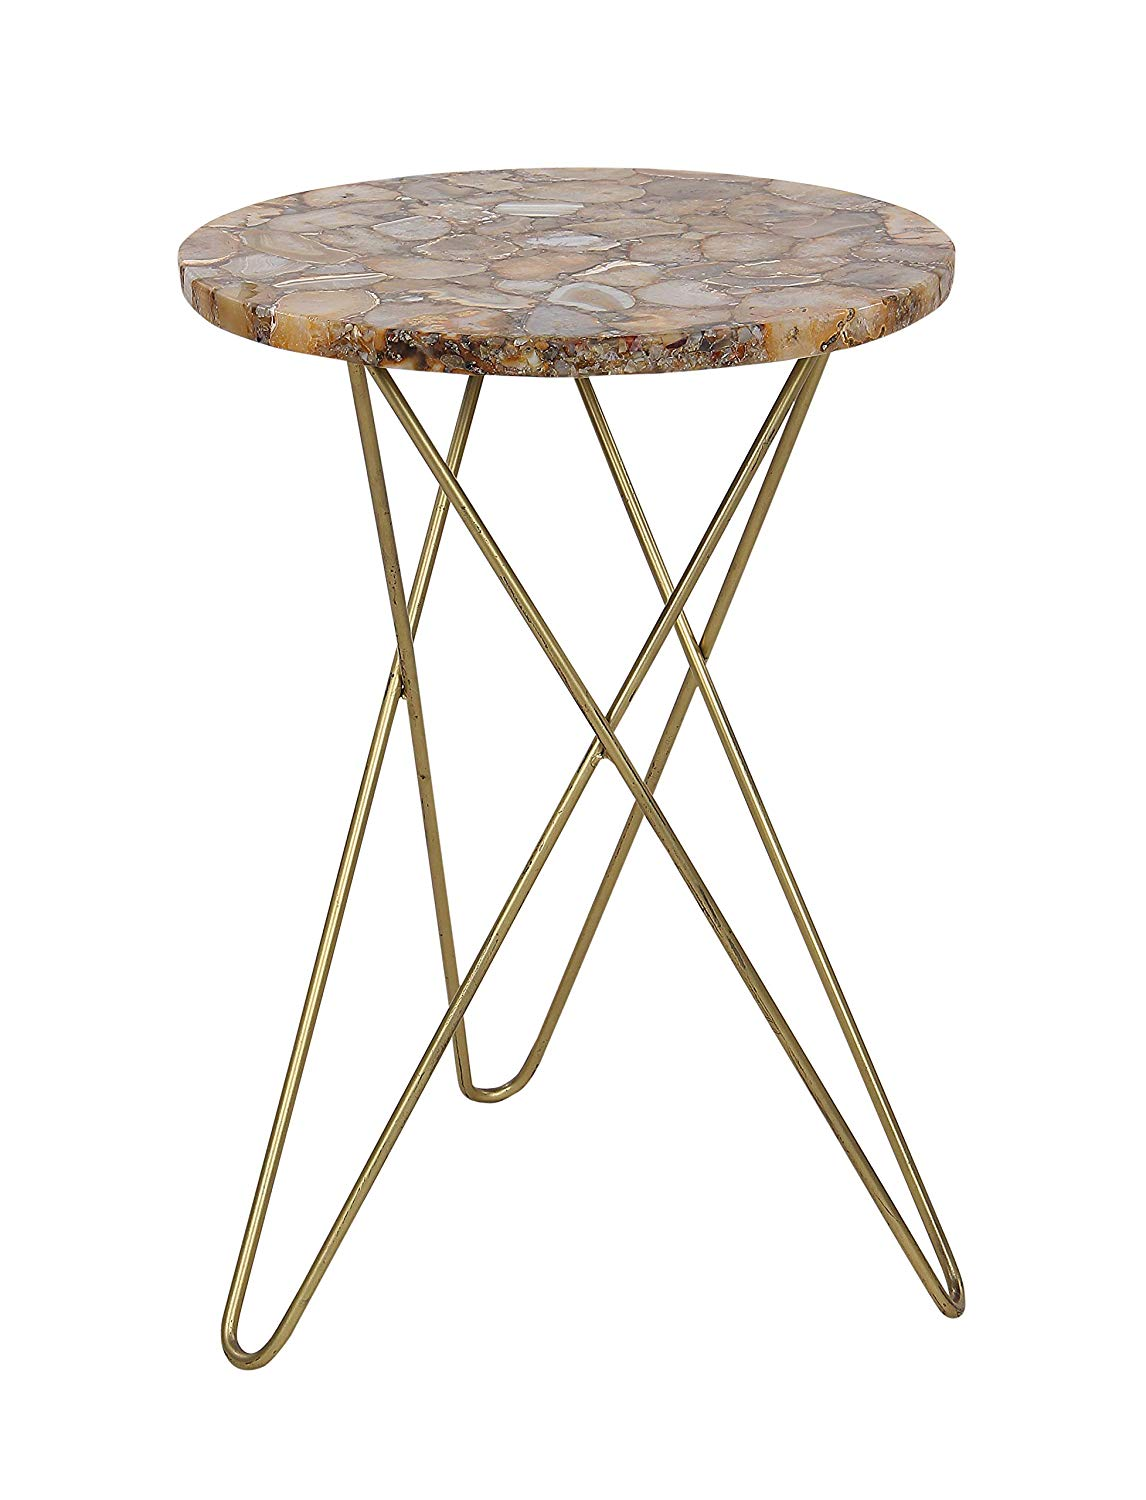 kross agate end table kitchen dining glass accent round wood nesting tables cupboards black wicker patio furniture metal home decor plexiglass coffee top parsons and chairs jacket